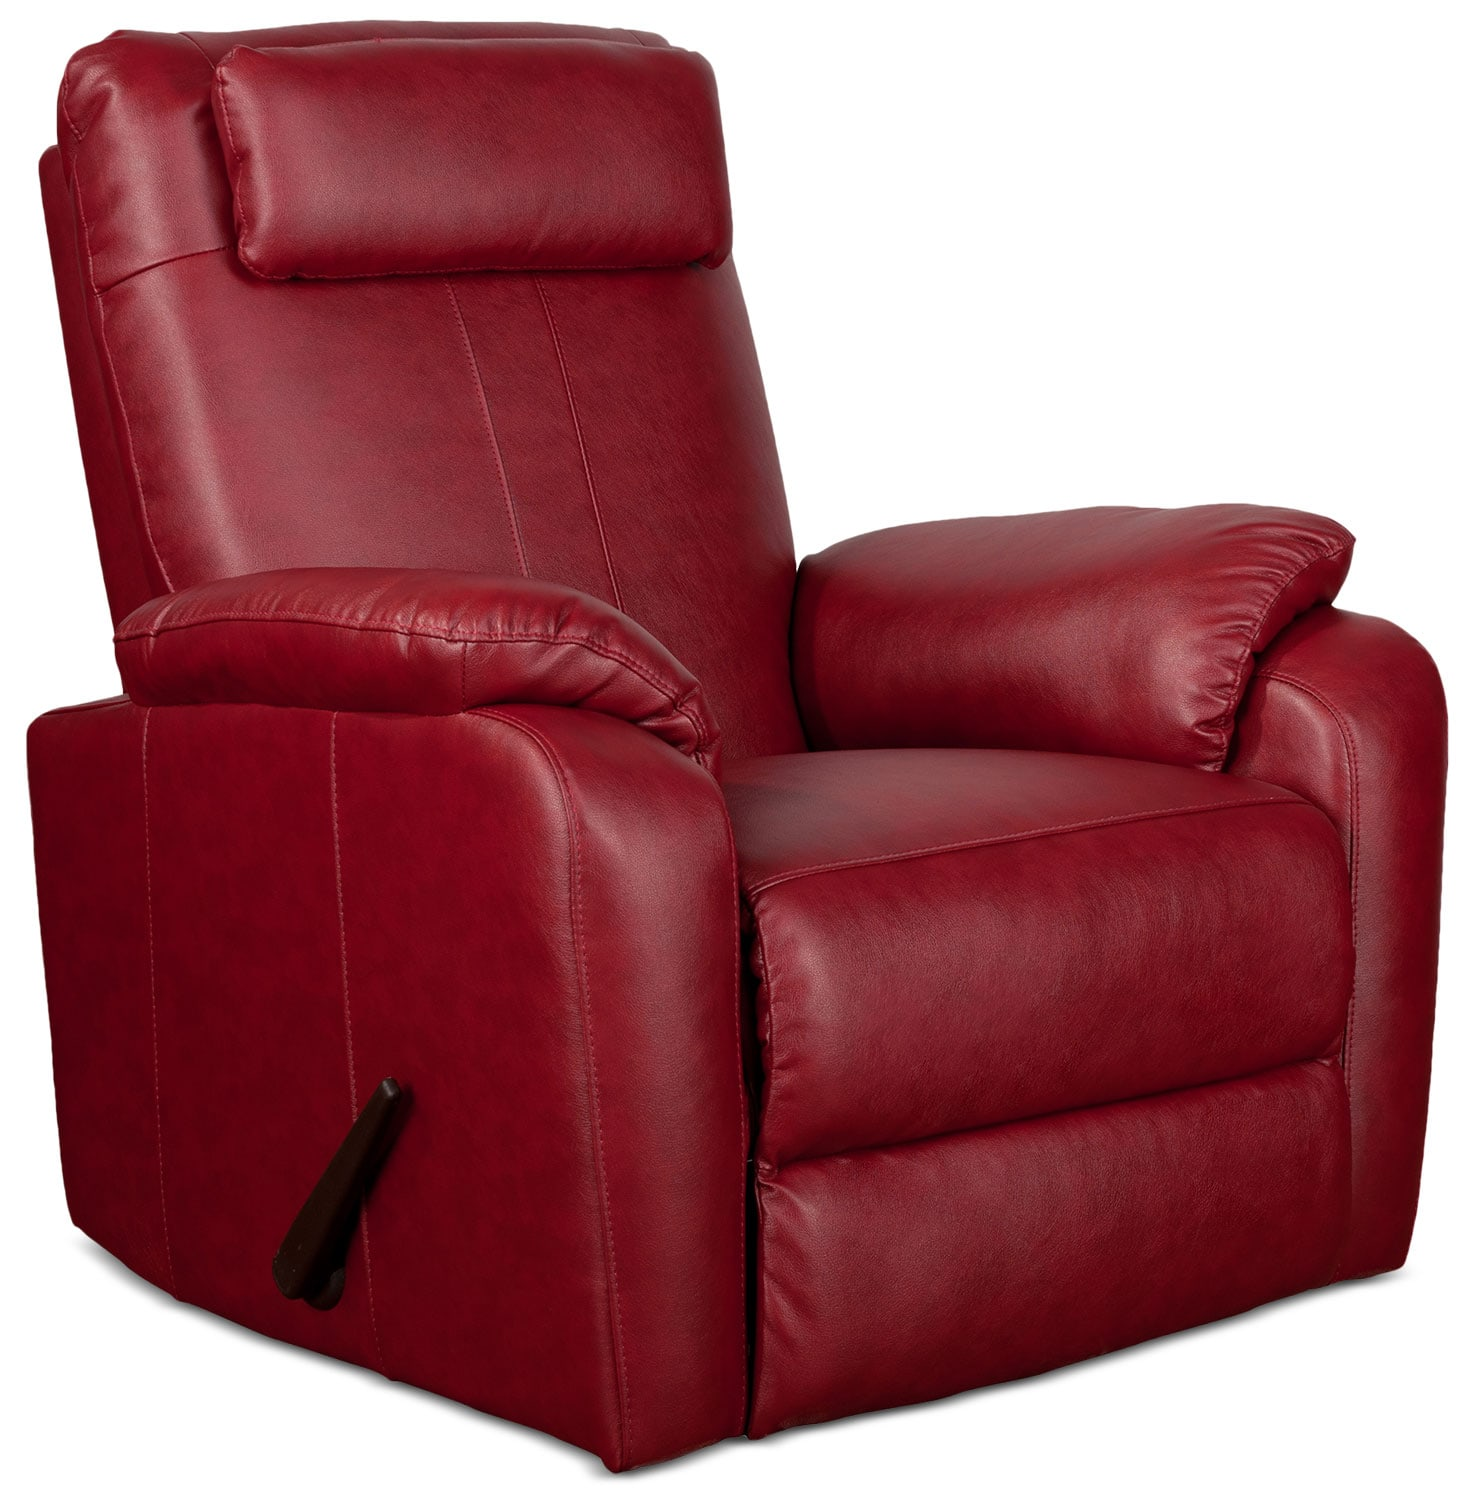 Rocking recliner chairs - Living Room Furniture Sparta Rocker Recliner Red Hover To Zoom